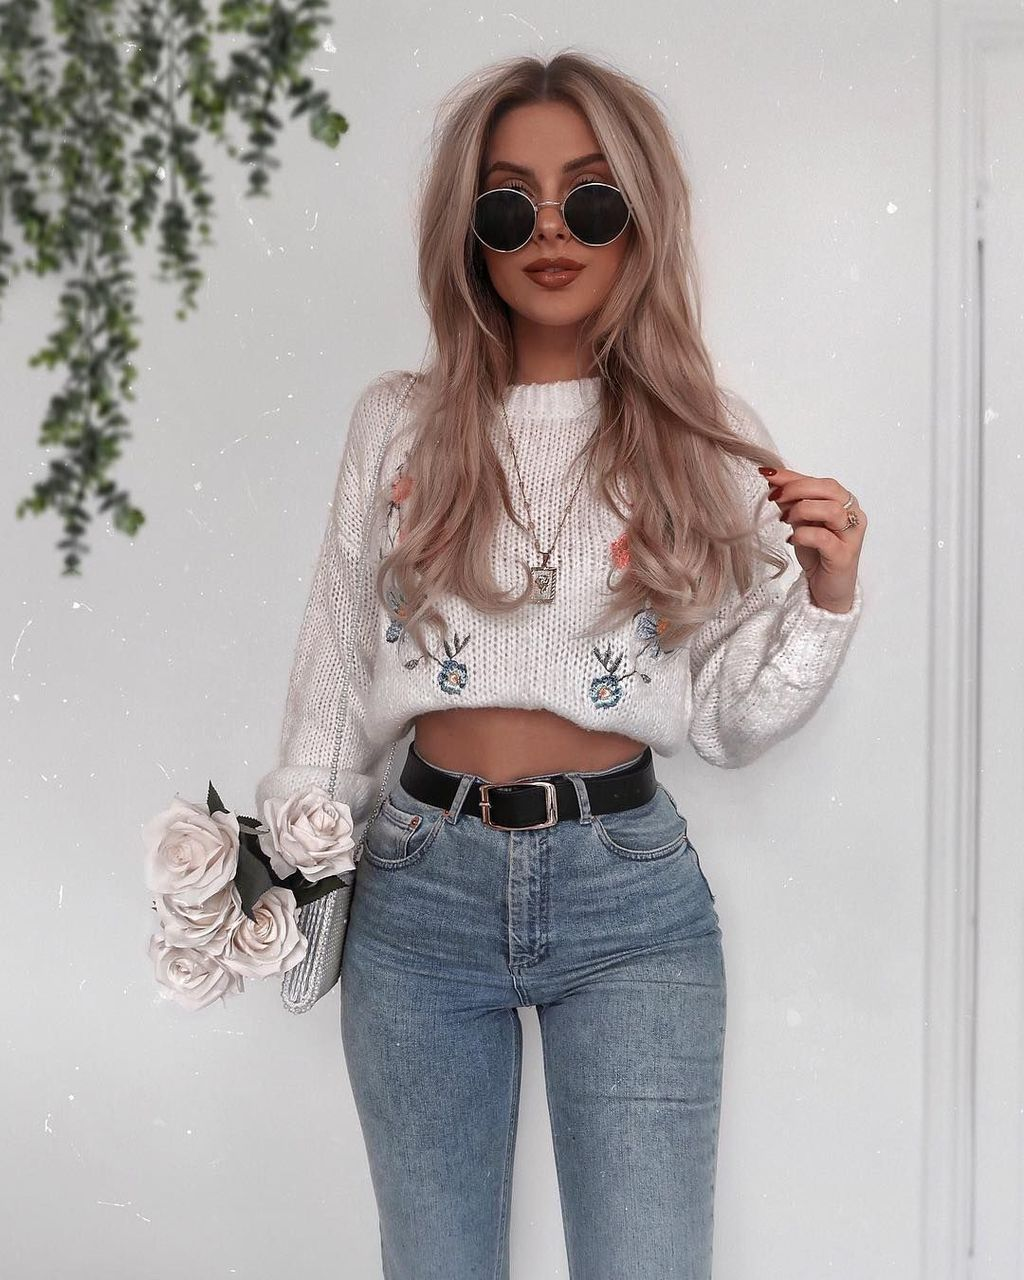 44 Cool Girly Outfit Ideas For Spring